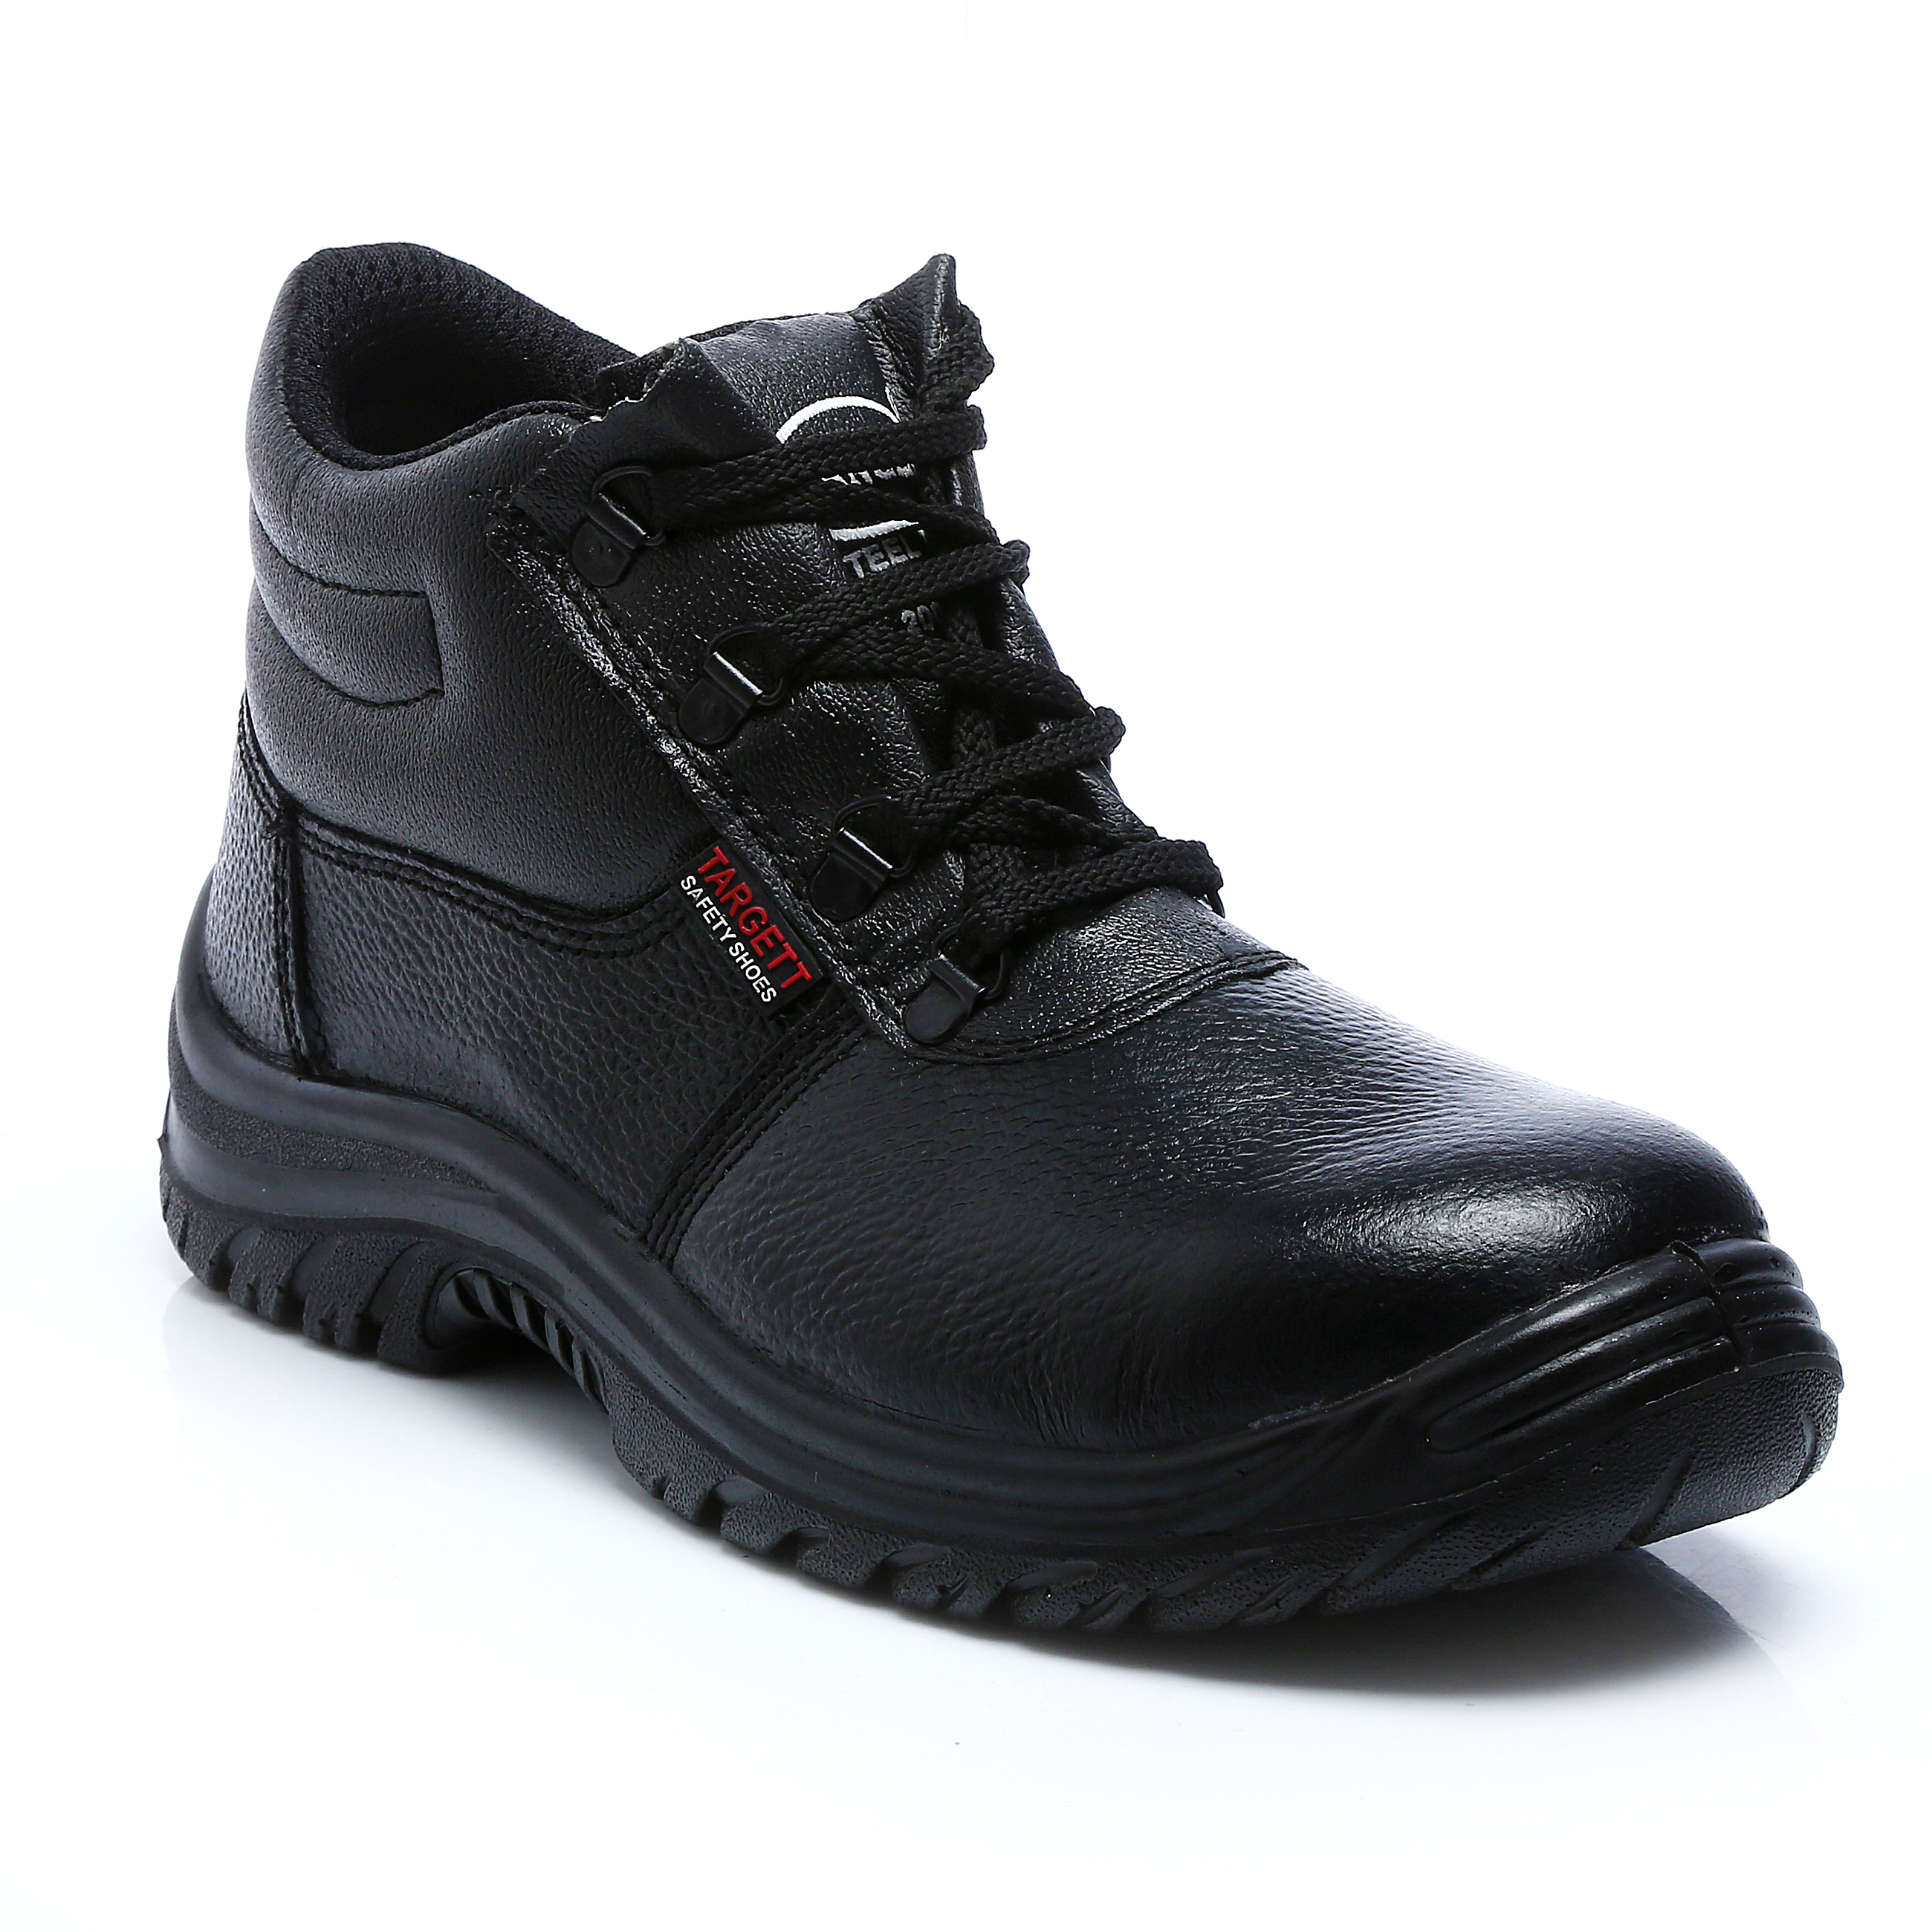 Target Safety Shoes